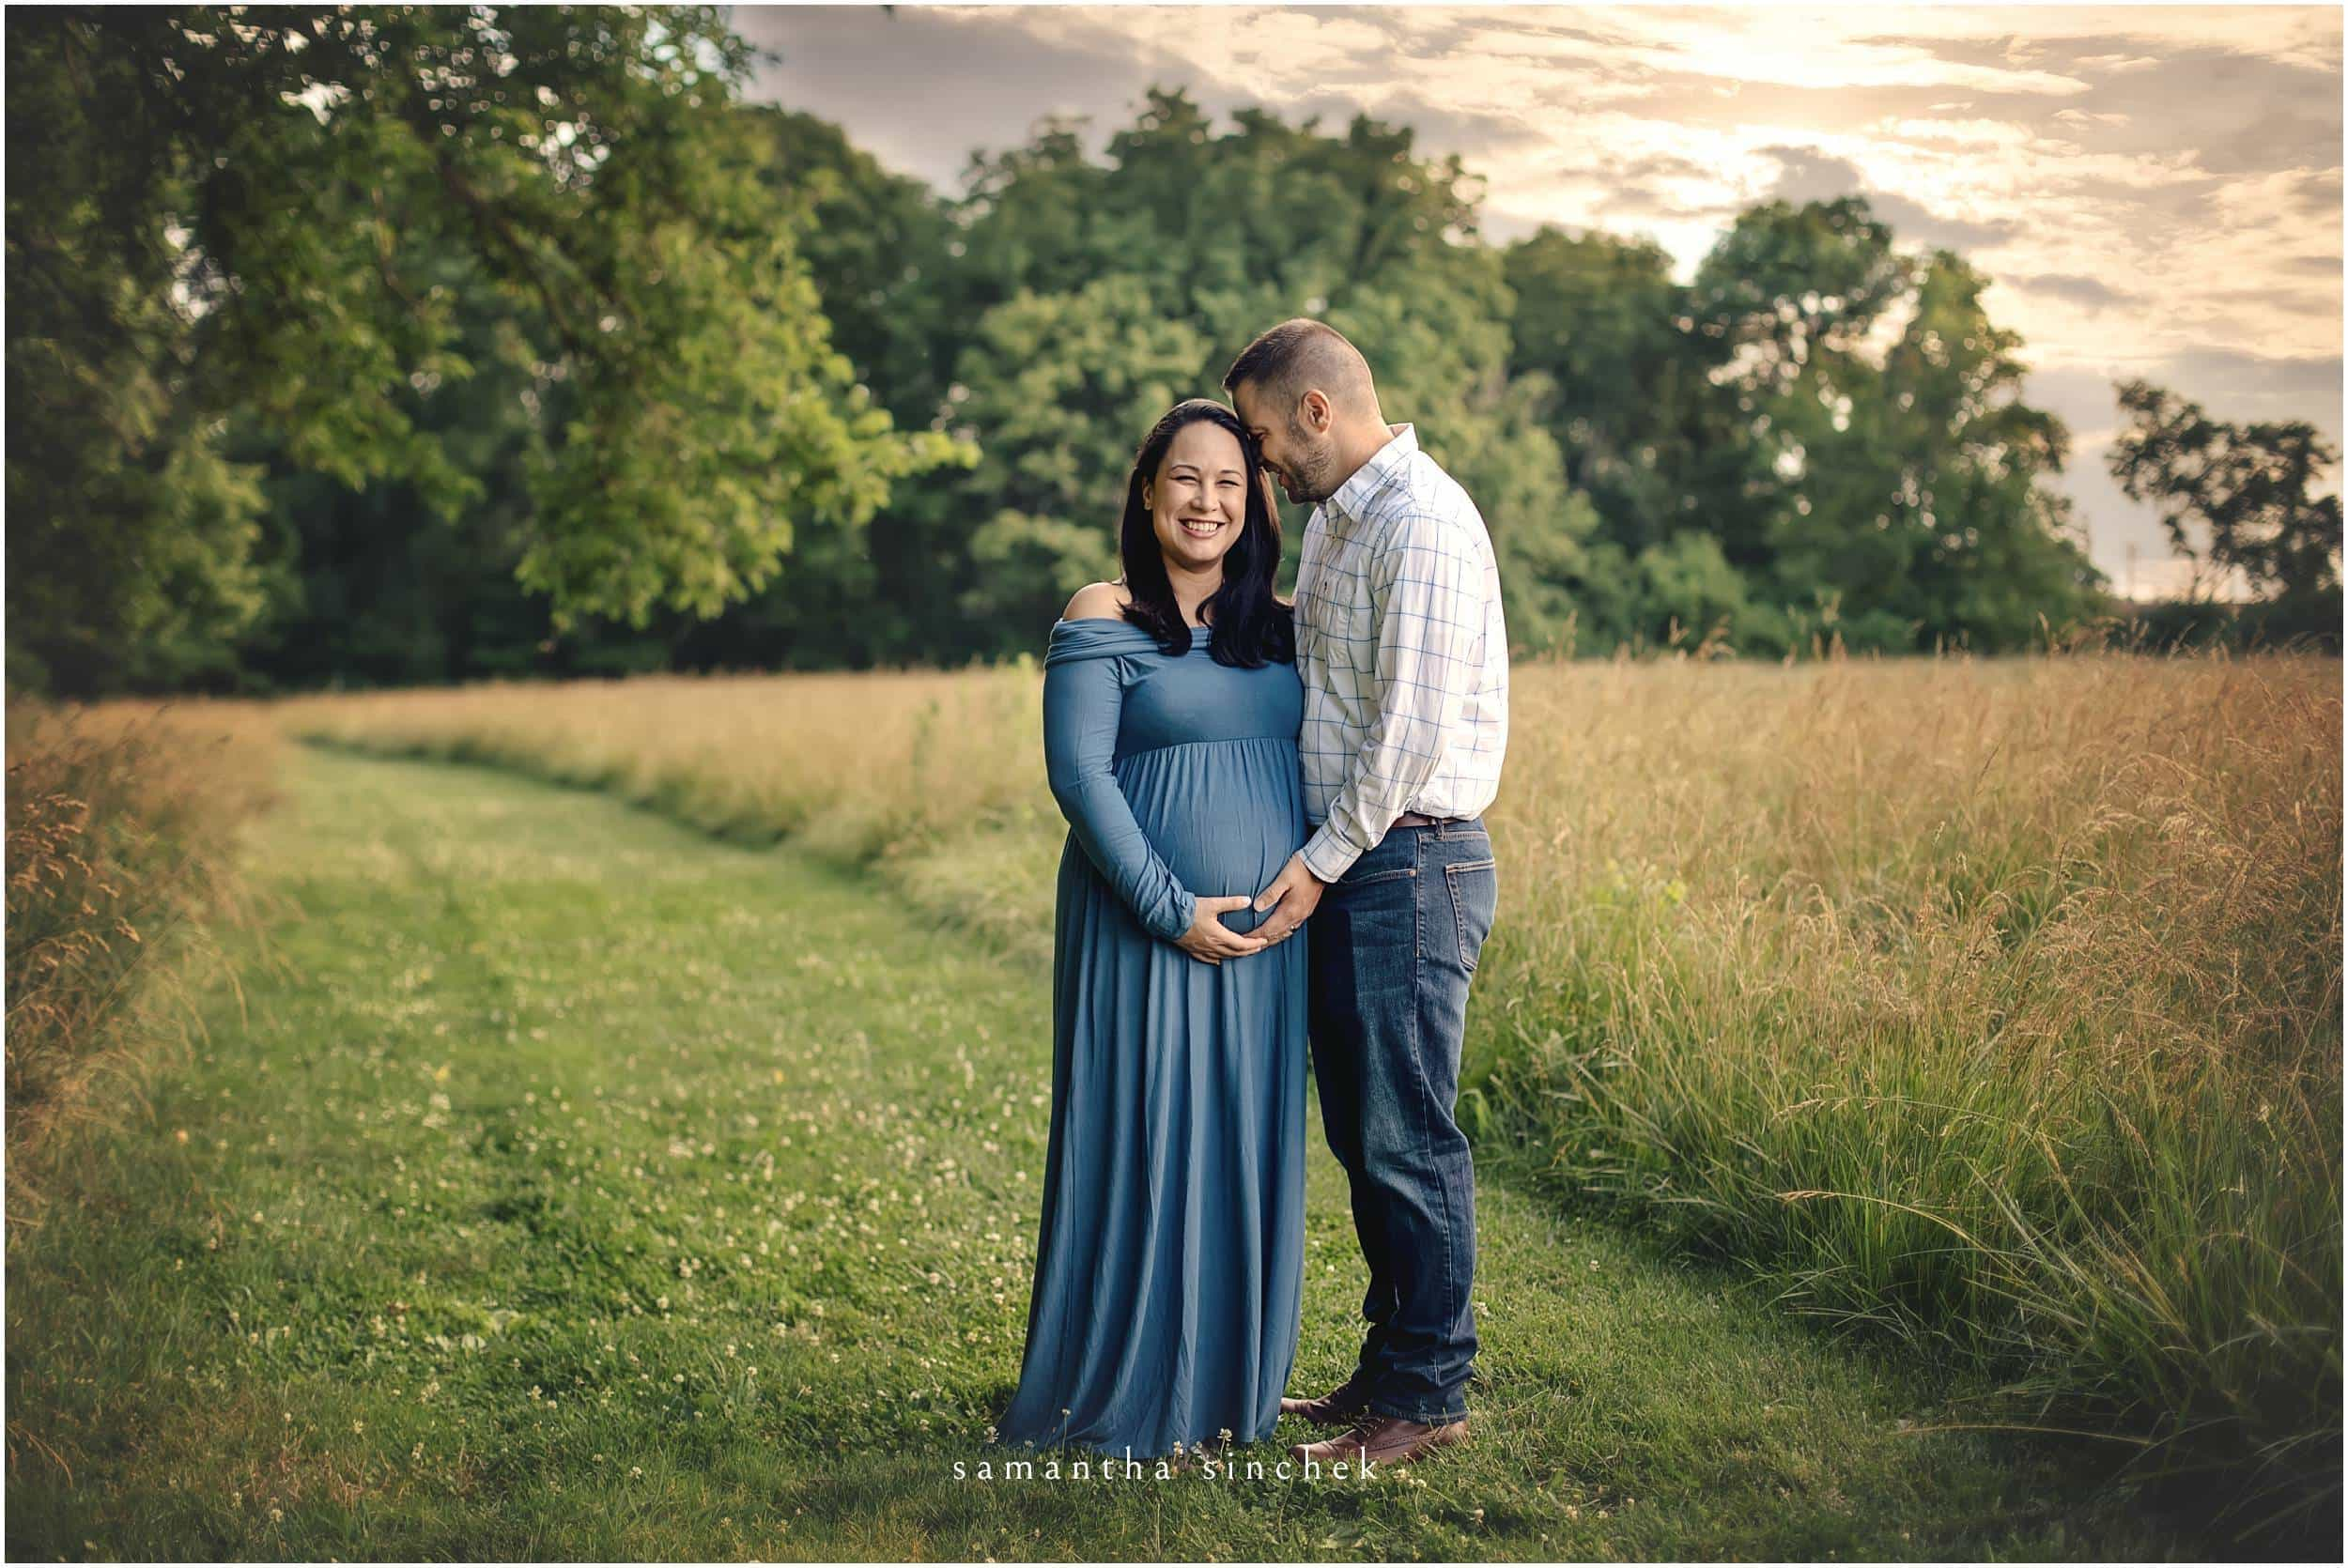 maternity pictures at sharon woods with samantha sinchek photography of CINCINNATI Ohio